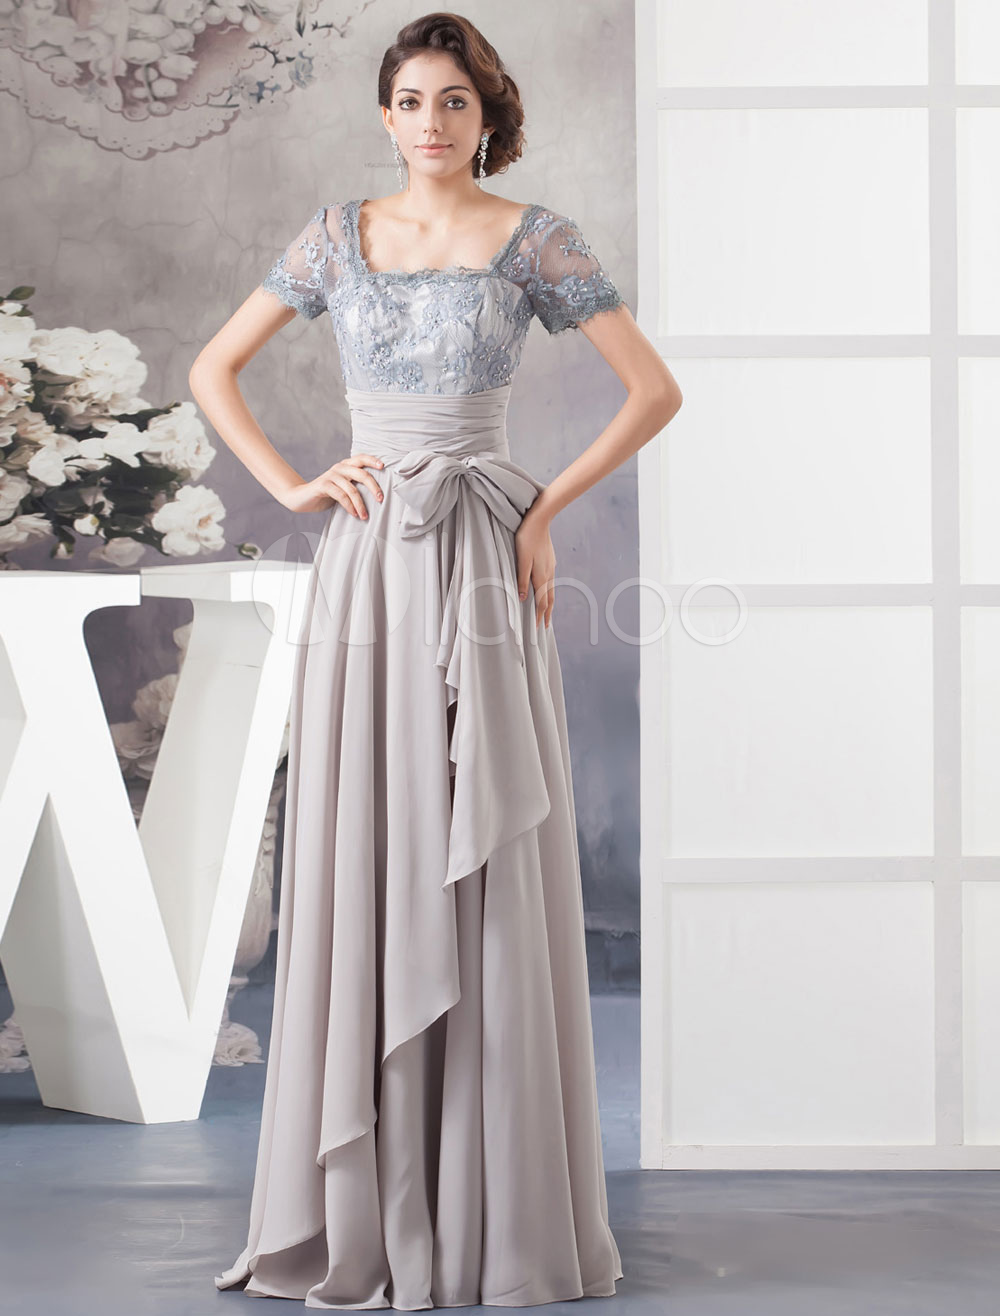 Lace Beading Mother Of The Bride Dress Pleated Chiffon A-Line Floor-Length Illusion Neck Evening Dress Milanoo